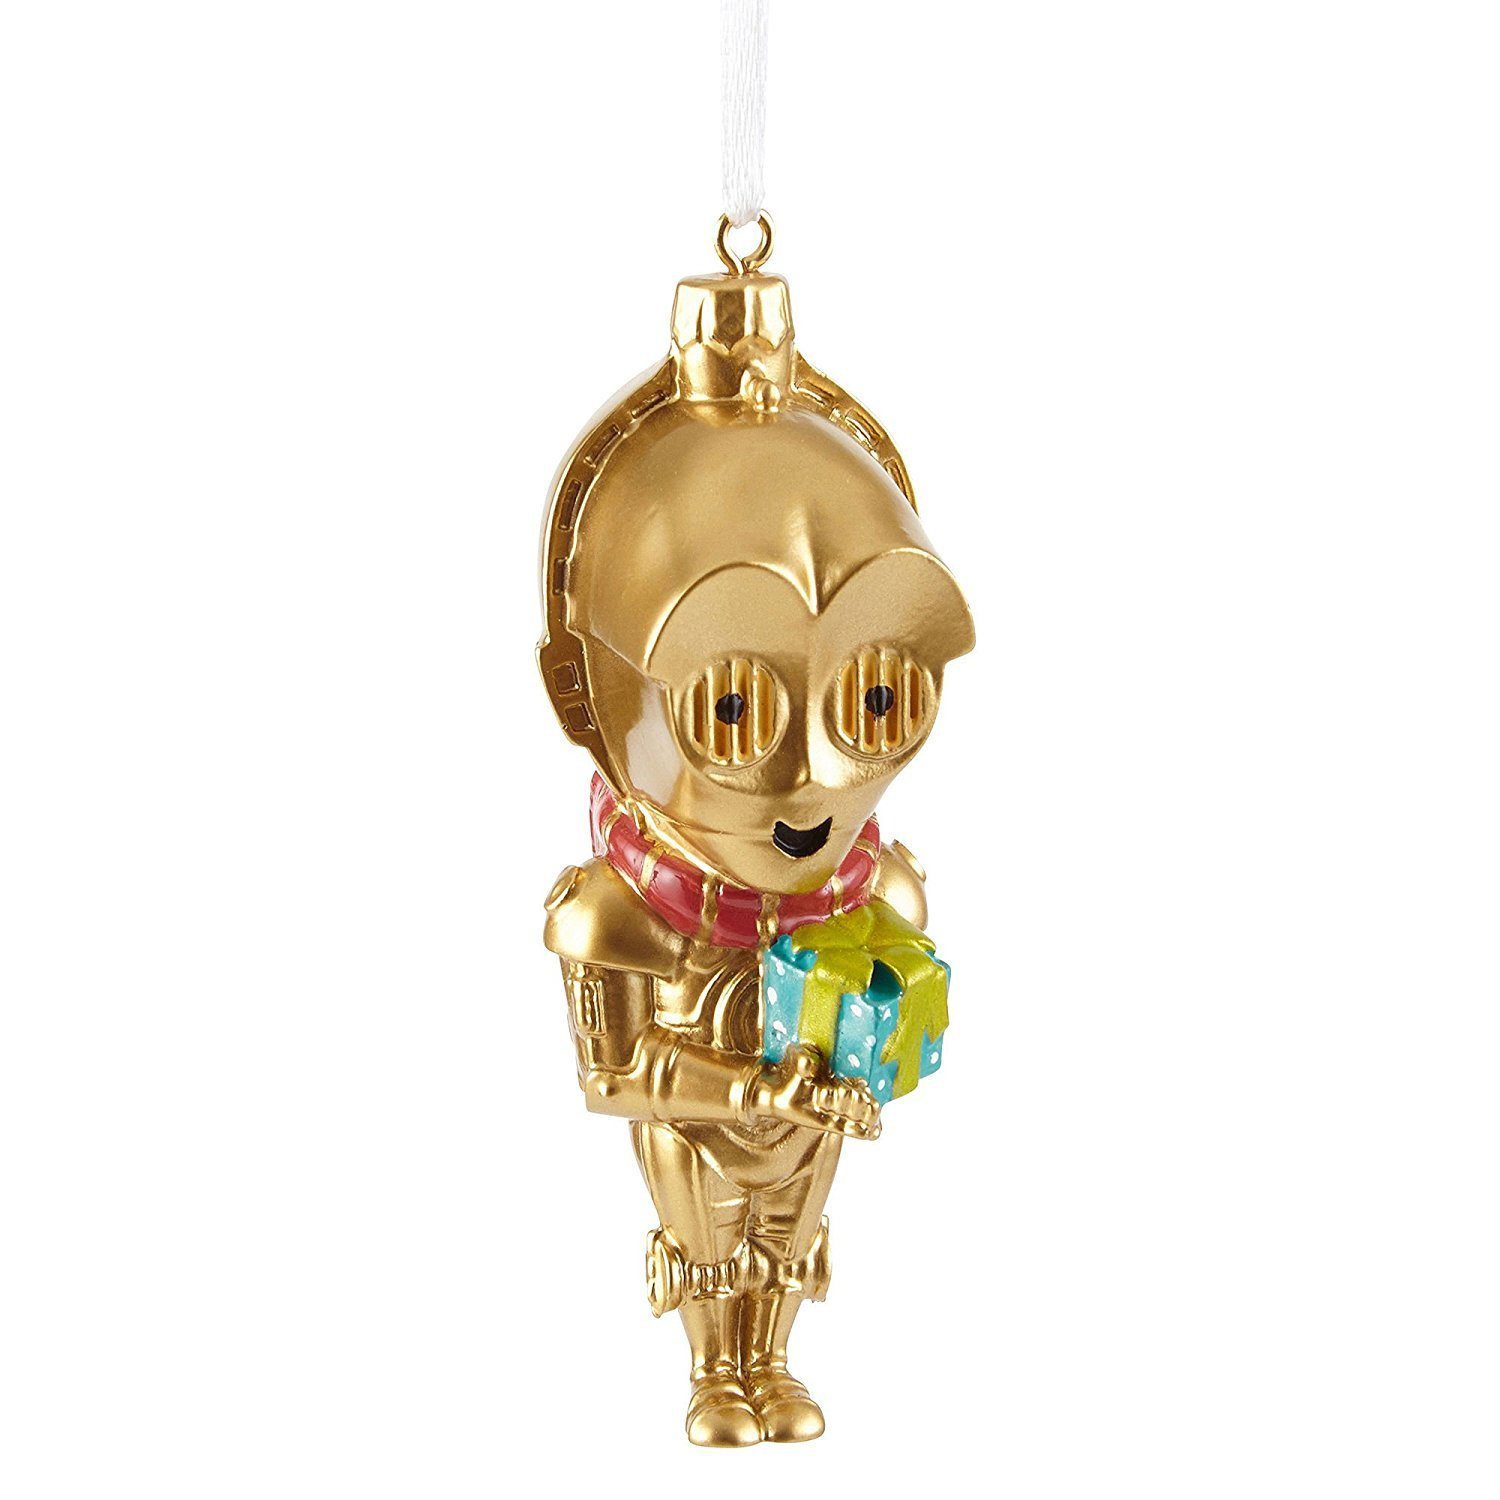 Star Wars C3P0 Ornament Festive Holiday Gifts